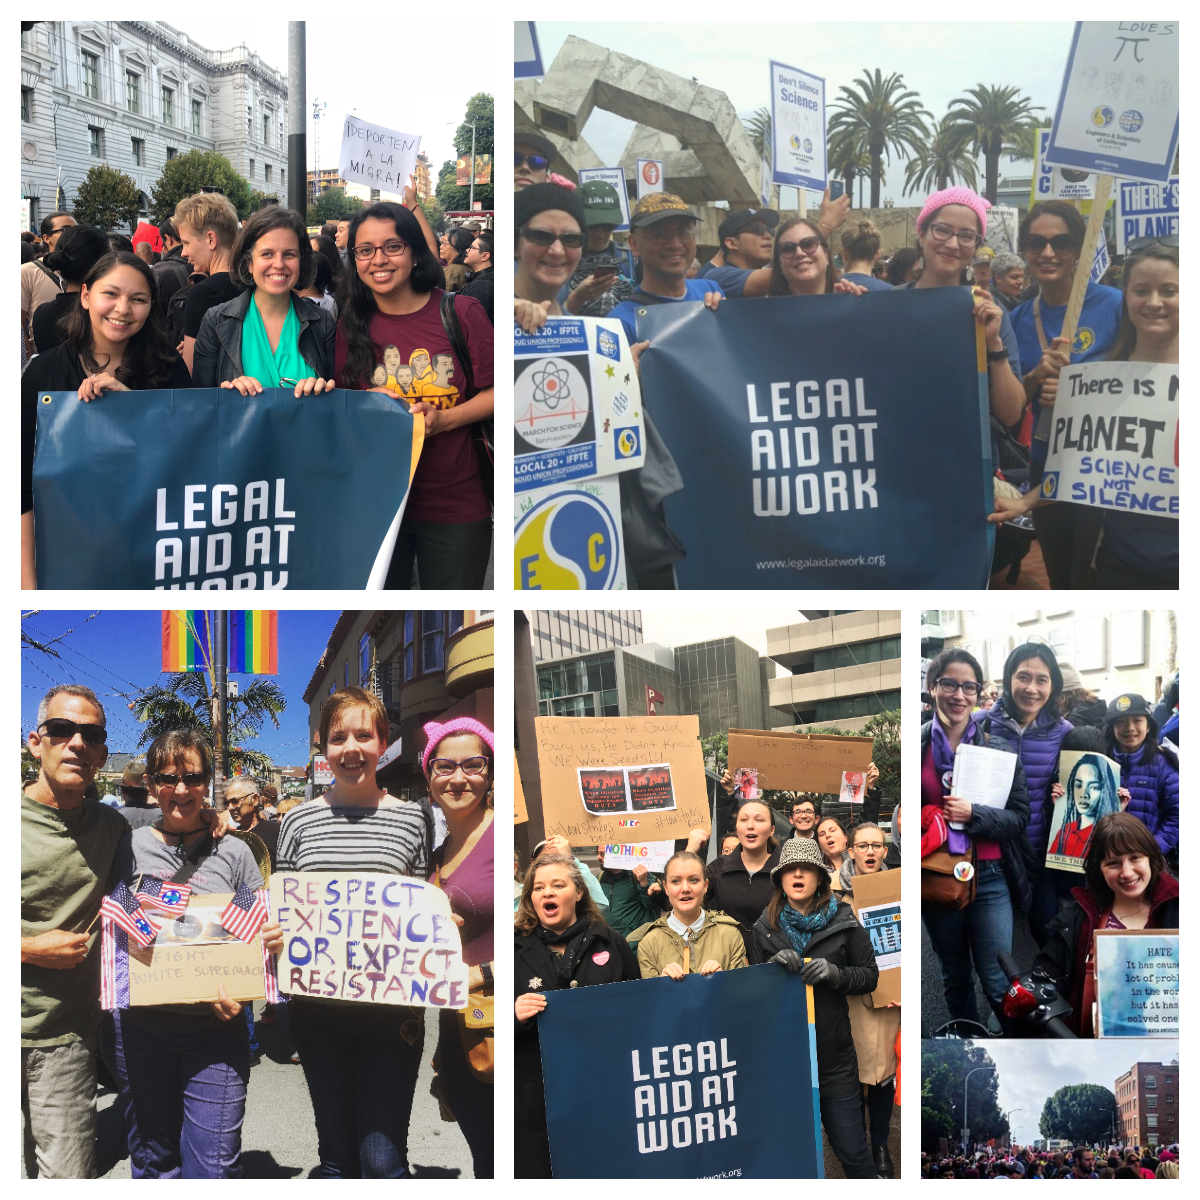 Legal Aid at Work Participates in 2018 Women's March